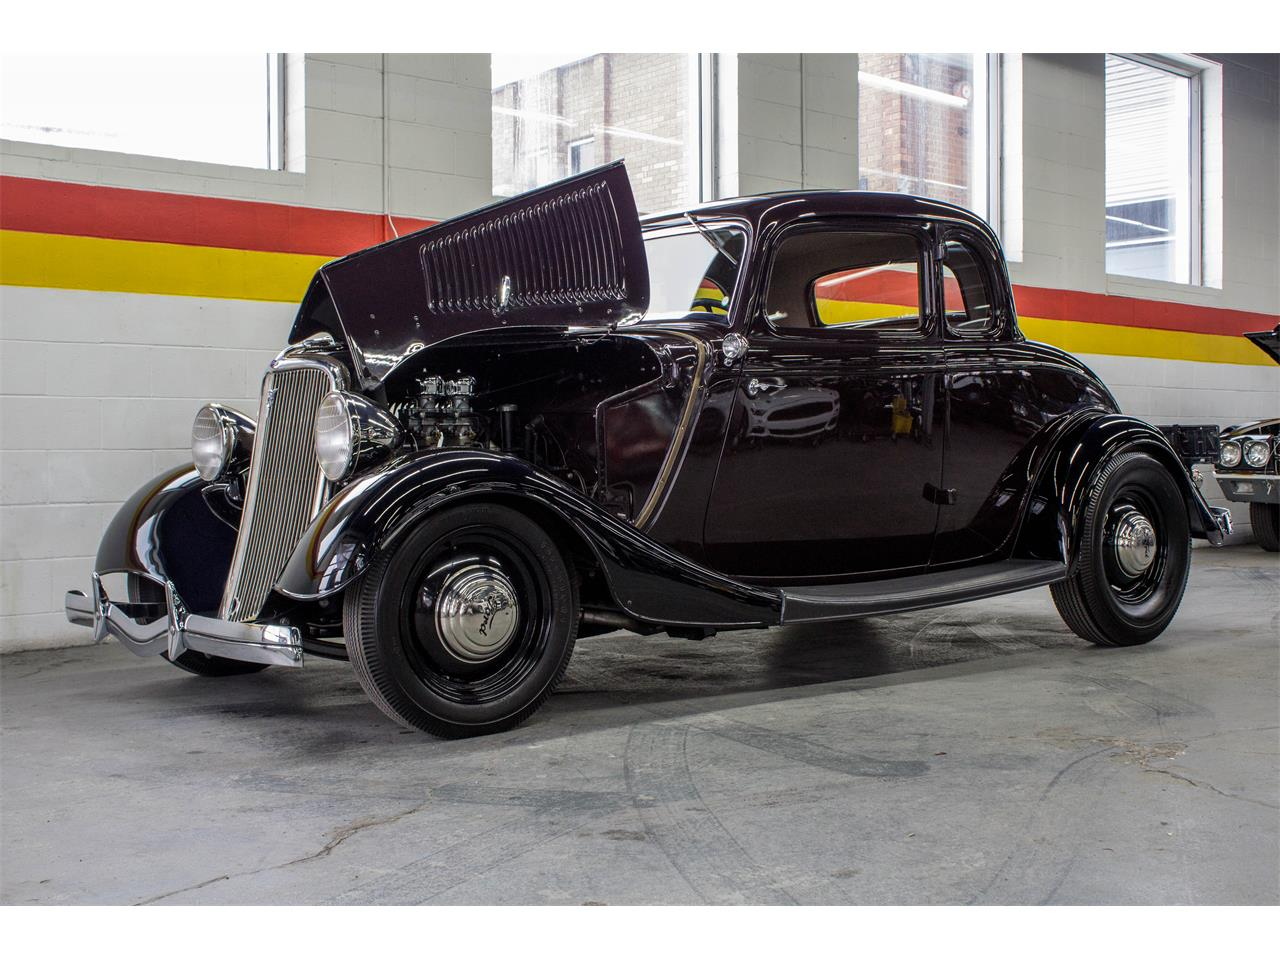 Large Picture of Classic '33 Ford Hot Rod located in Quebec - $89,500.00 Offered by John Scotti Classic Cars - KJ00